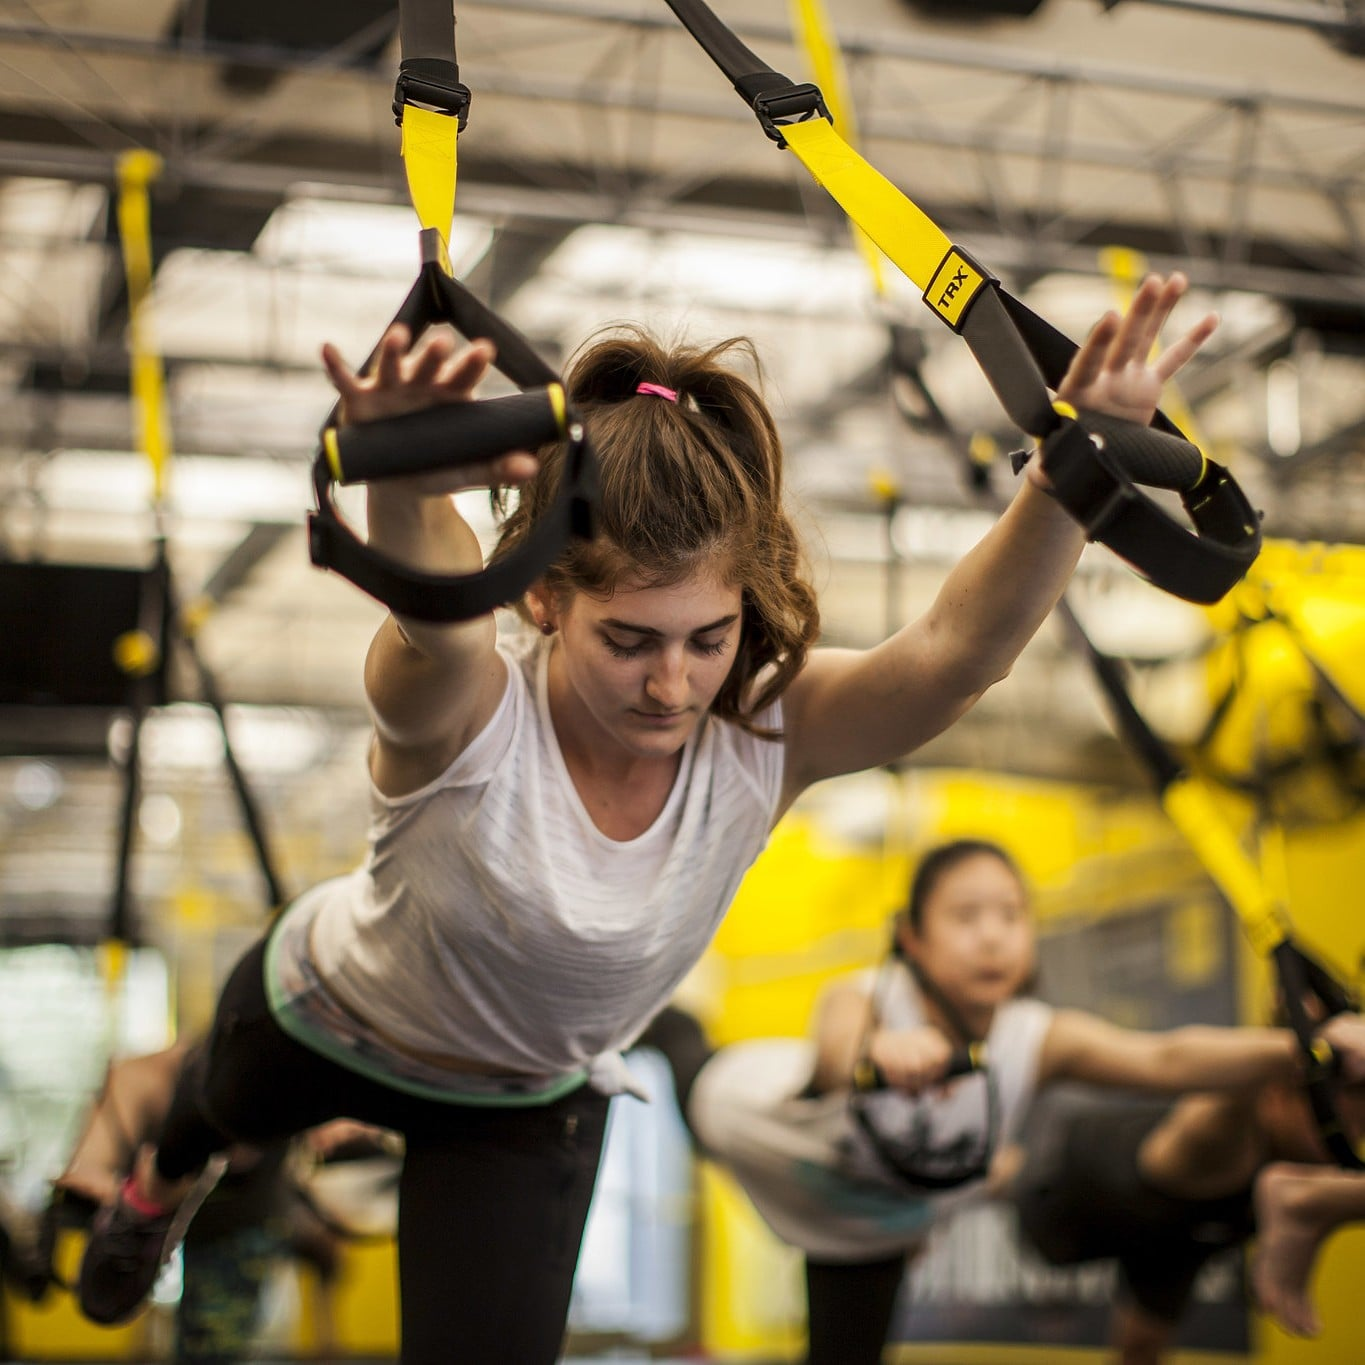 Trx Full Body Workout Popsugar Fitness Workouts And Tagged Circuit